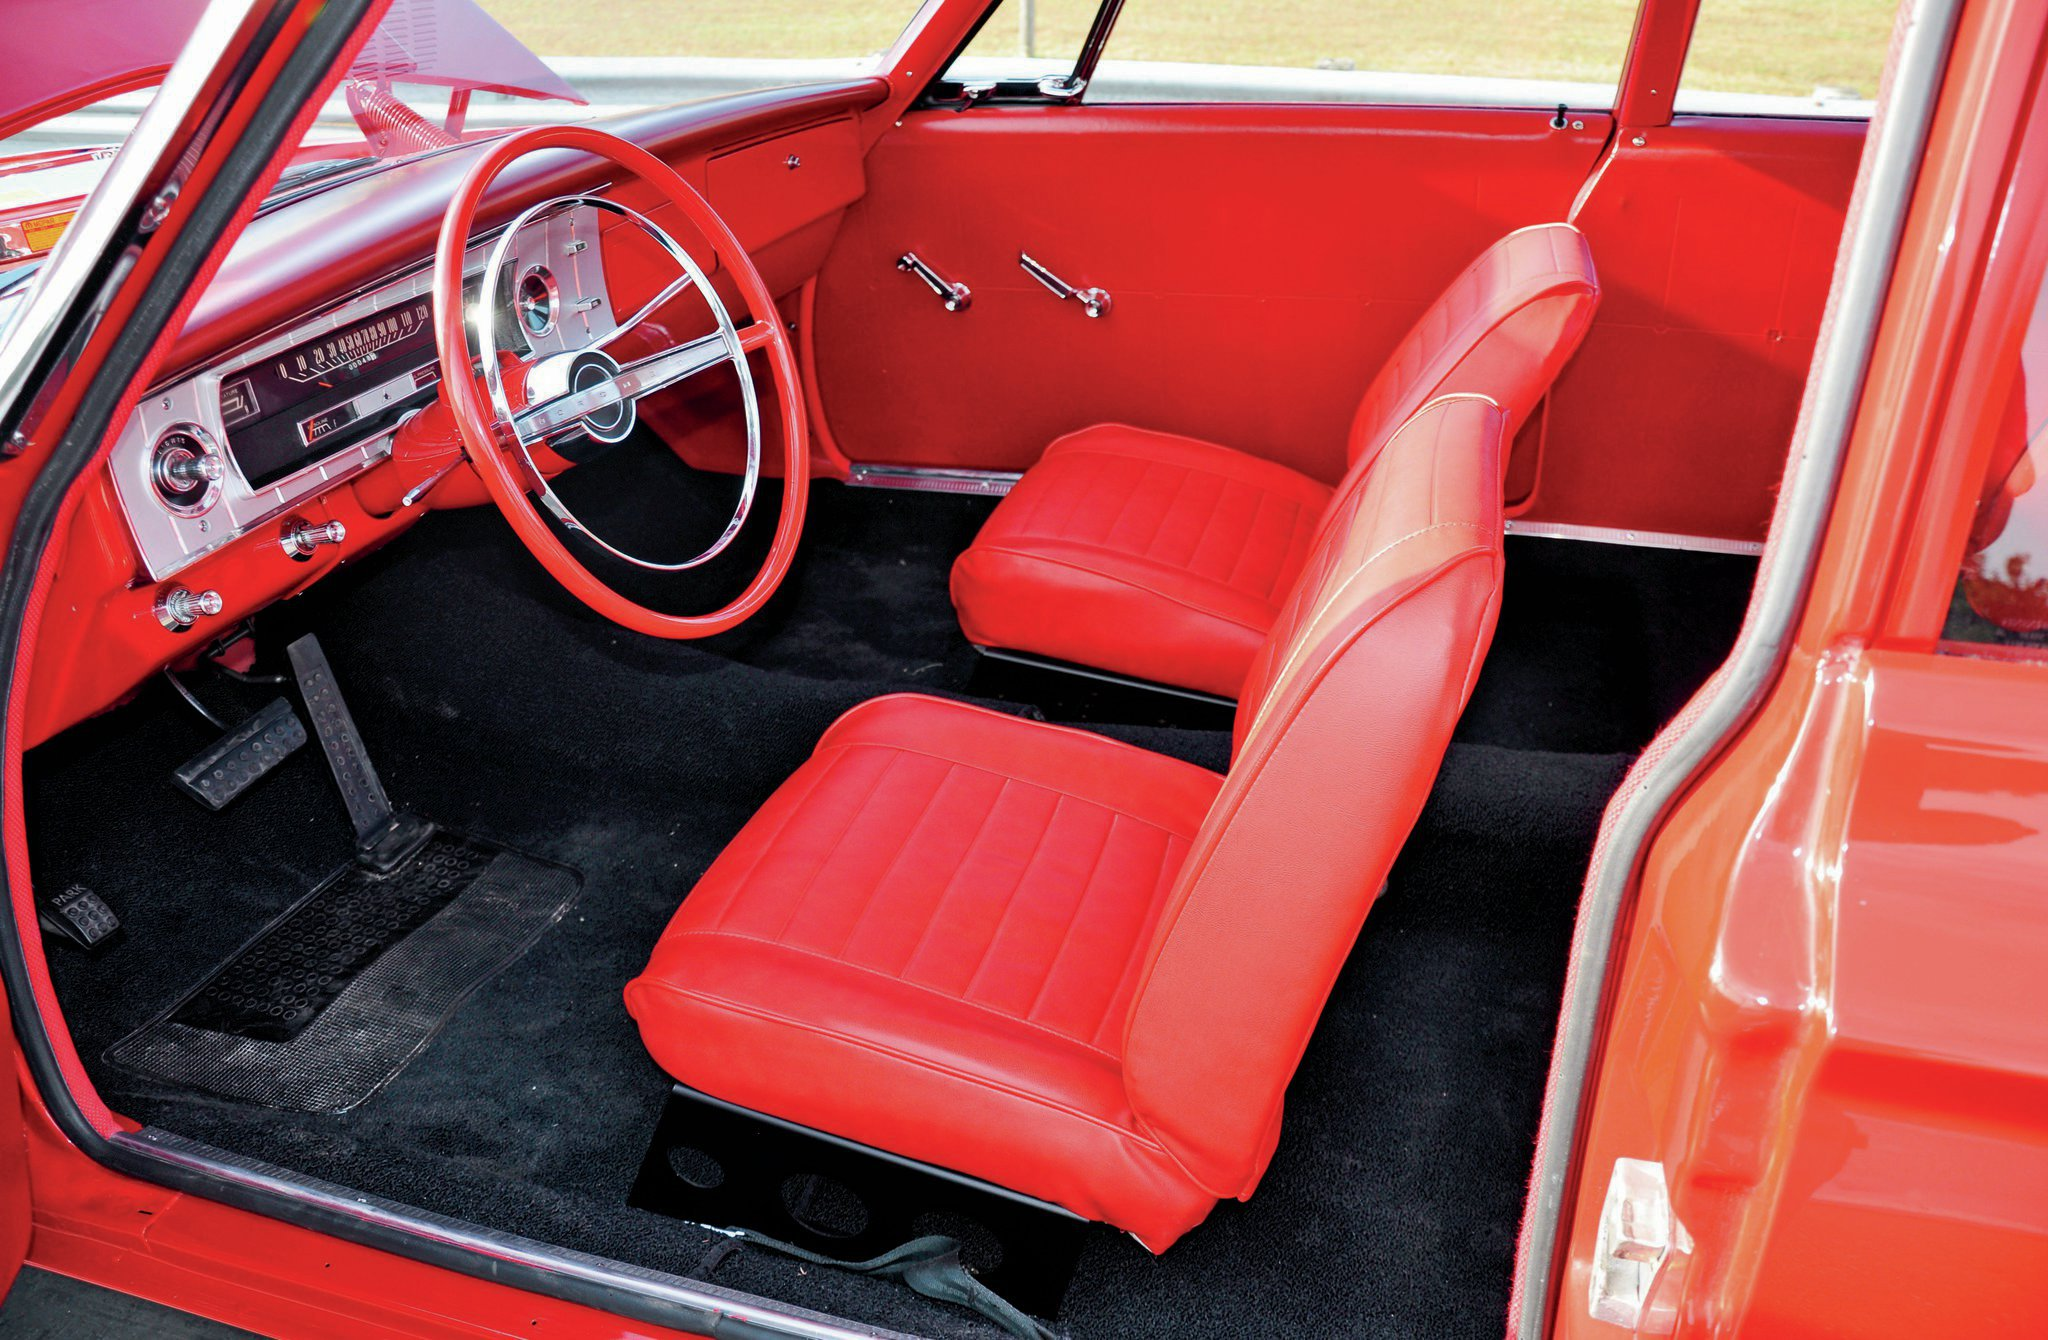 The '65 factory racers continued to incorporate many of the weight-saving features found in the '64 cars.